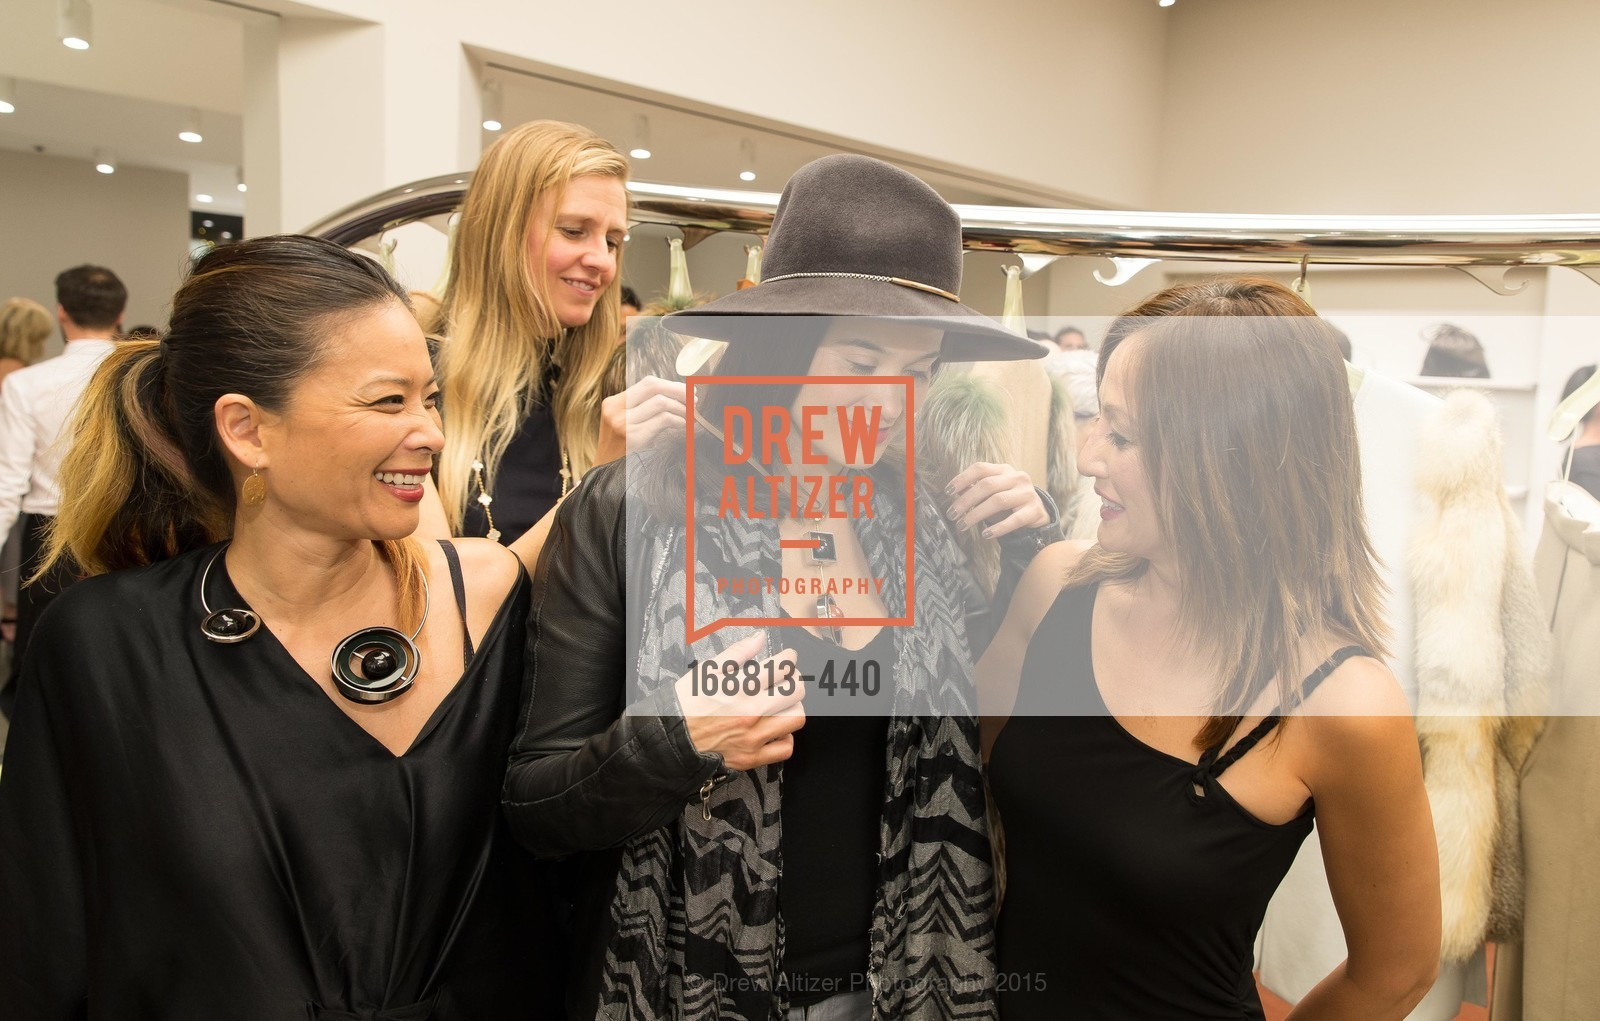 Kristin Nadaraja, Selby Taketa, Amanda Terry, Vaughn Stevenson, W Magazine and BAMPFA Celebrate the Opening of the Marni San Francisco Boutique with co-hosts Sabrina Buell and Alison Pincus, Marni San Francisco. 77 Maiden Lane, November 4th, 2015,Drew Altizer, Drew Altizer Photography, full-service agency, private events, San Francisco photographer, photographer california